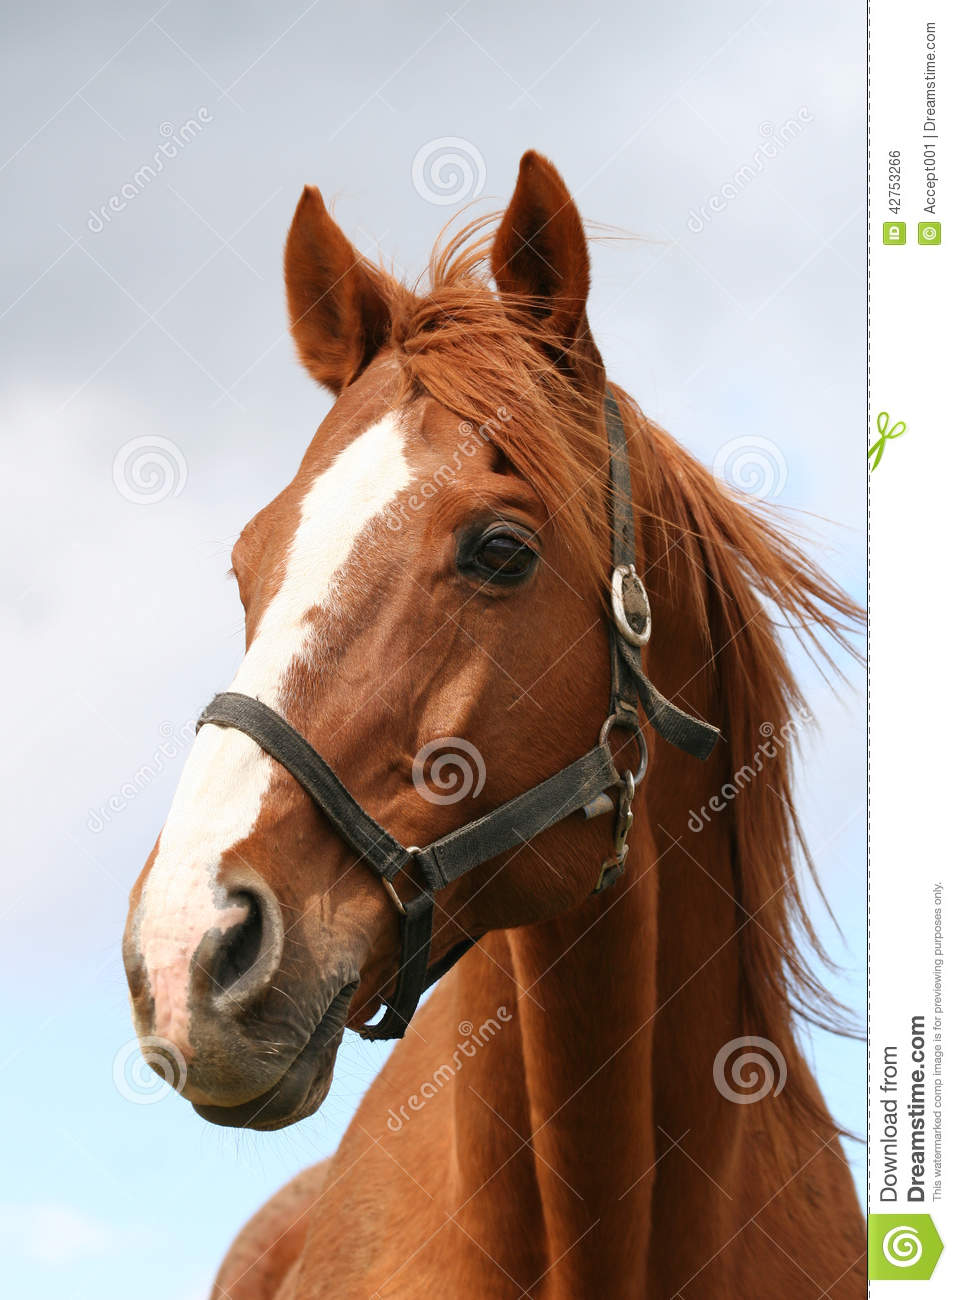 Beautiful Brown Thoroughbred Horse Head At Farm Stock Photo - Image ...